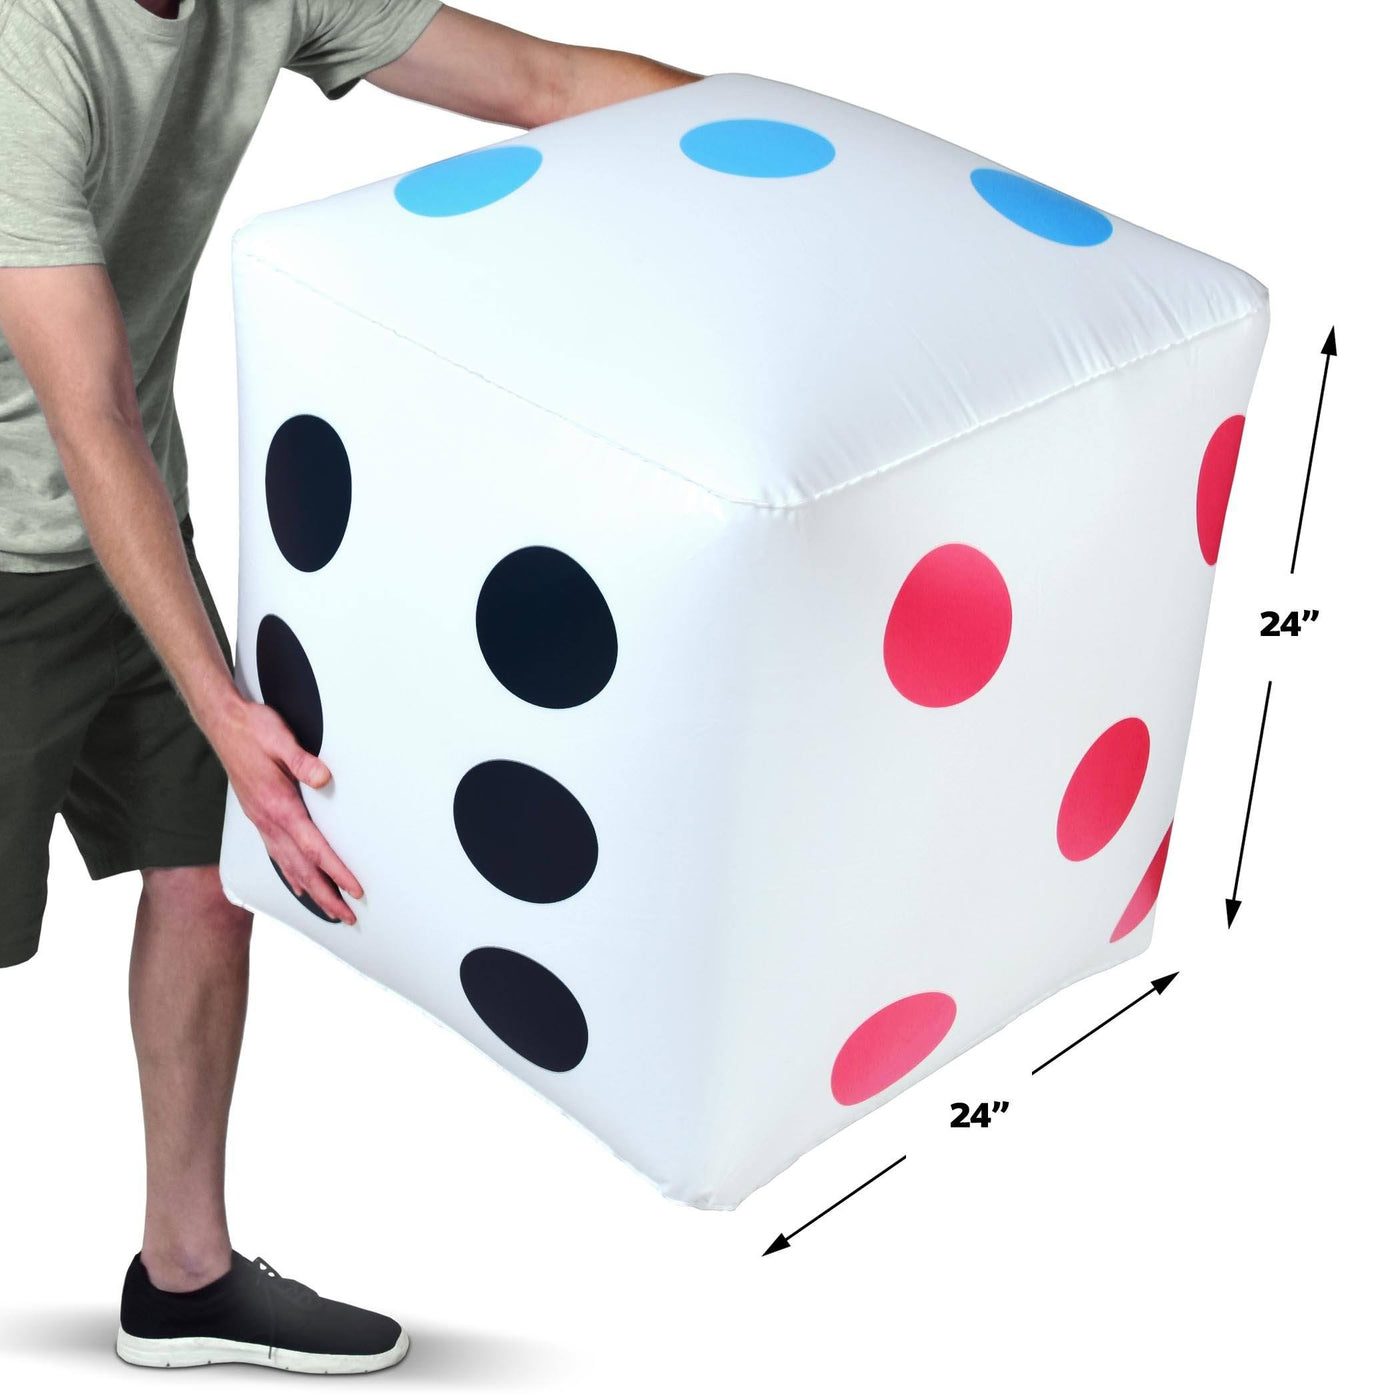 Gosports 2 Pack Giant 2 Inflatable Dice 2 Pack Huge Size With Rapid Playgosports Com